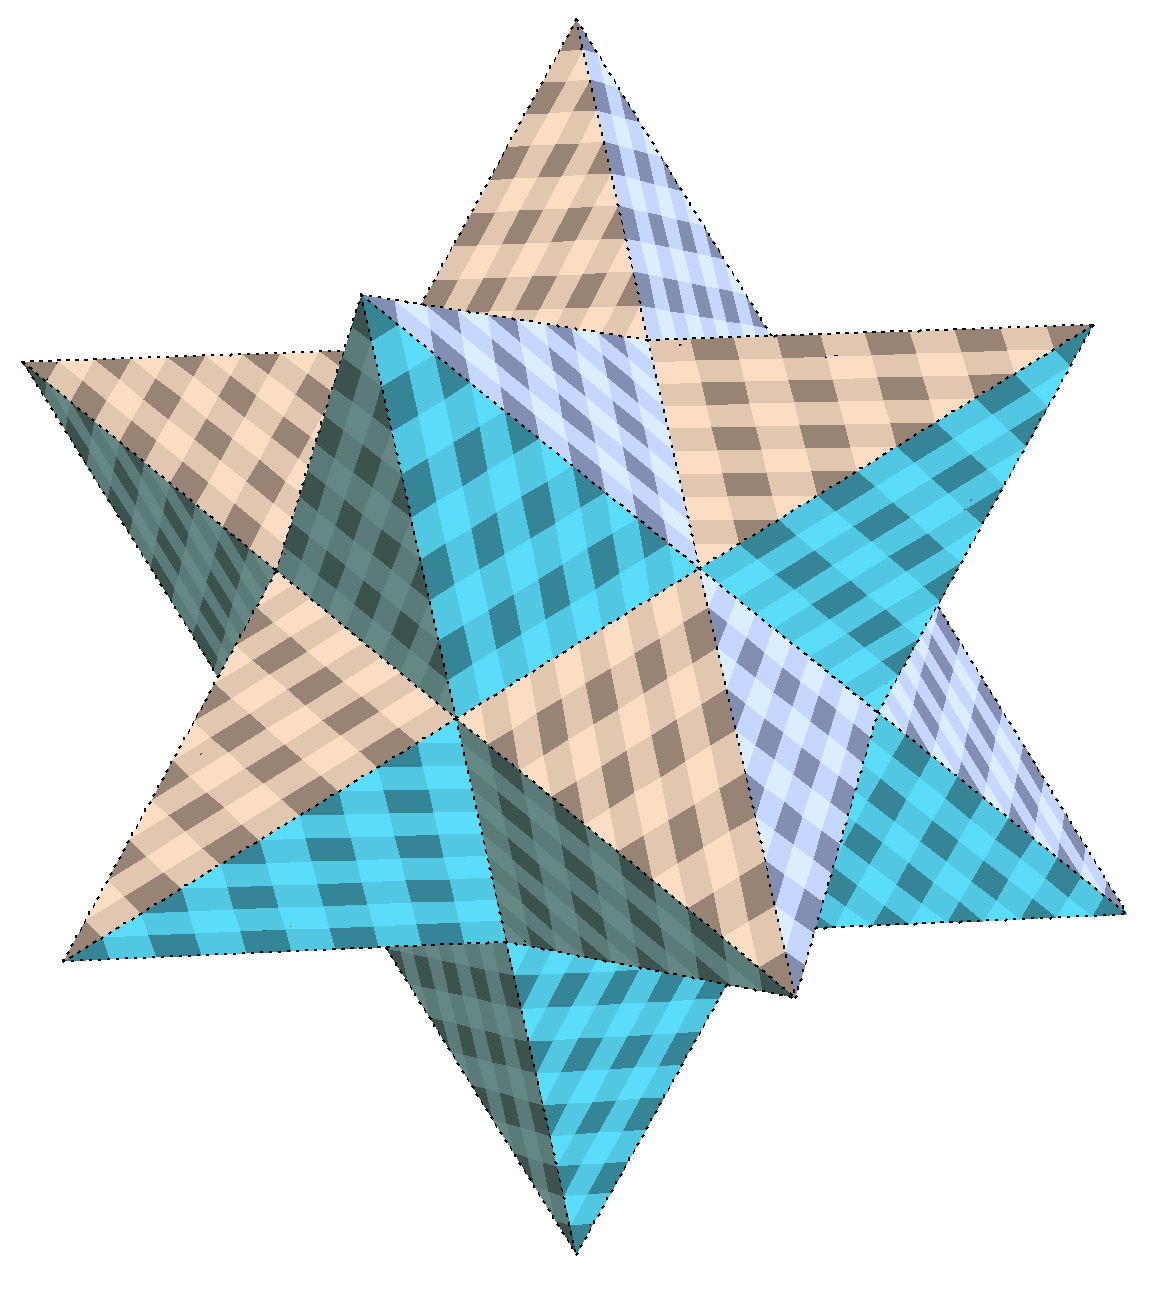 Patterned, Stellated dodecahedron | Algorithms | Pinterest